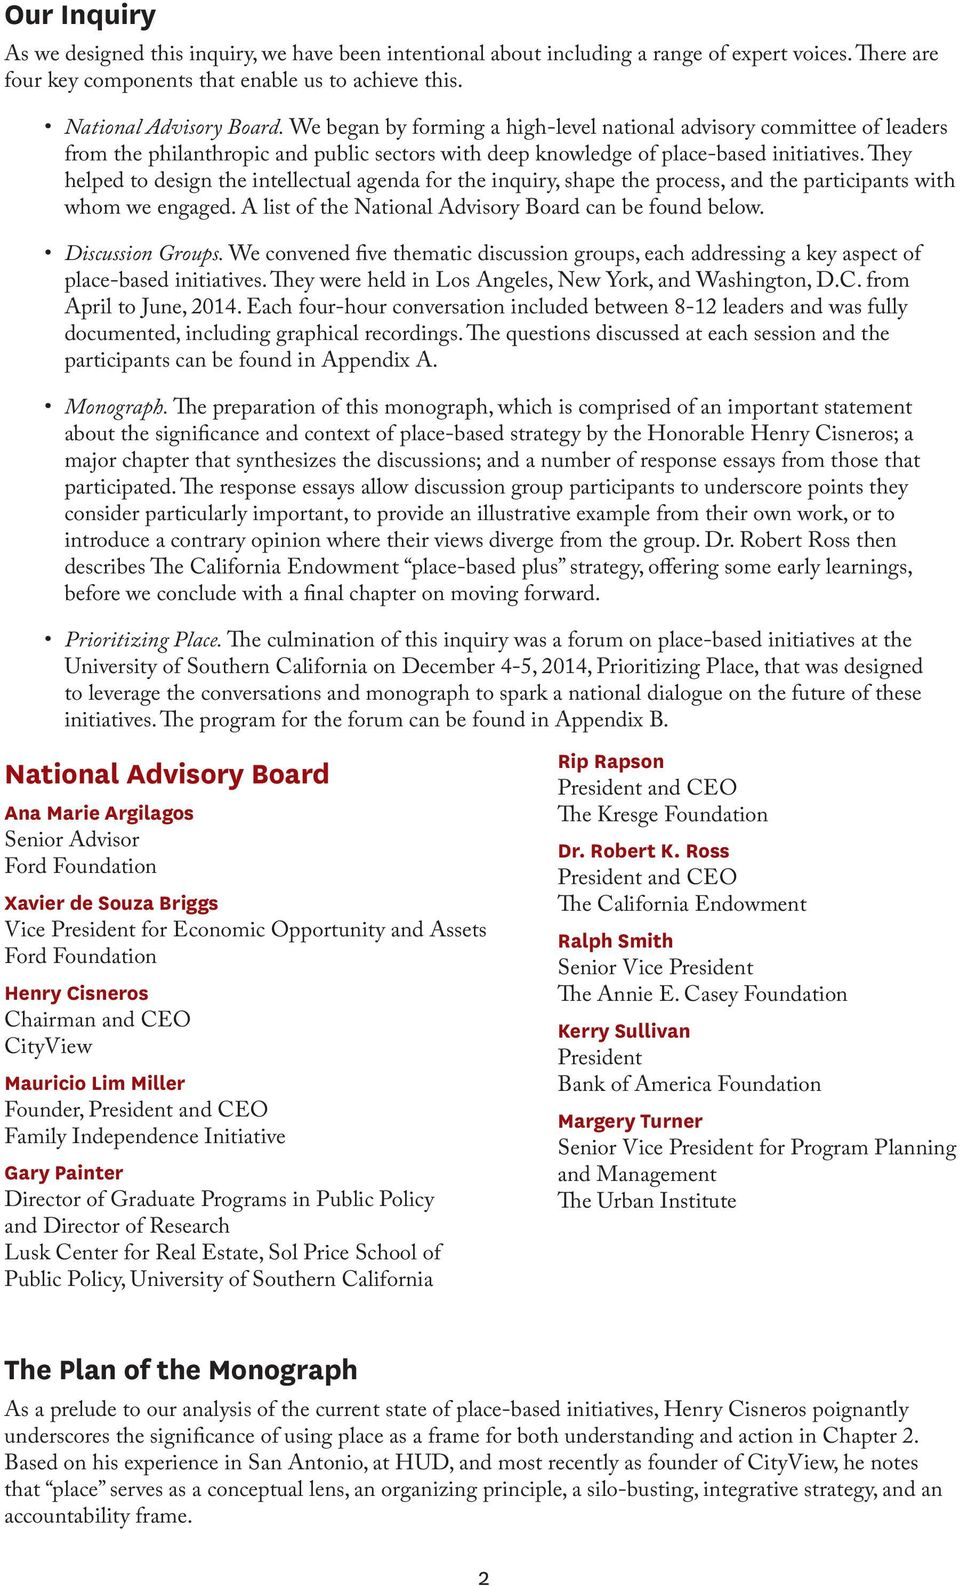 They helped to design the intellectual agenda for the inquiry, shape the process, and the participants with whom we engaged. A list of the National Advisory Board can be found below.